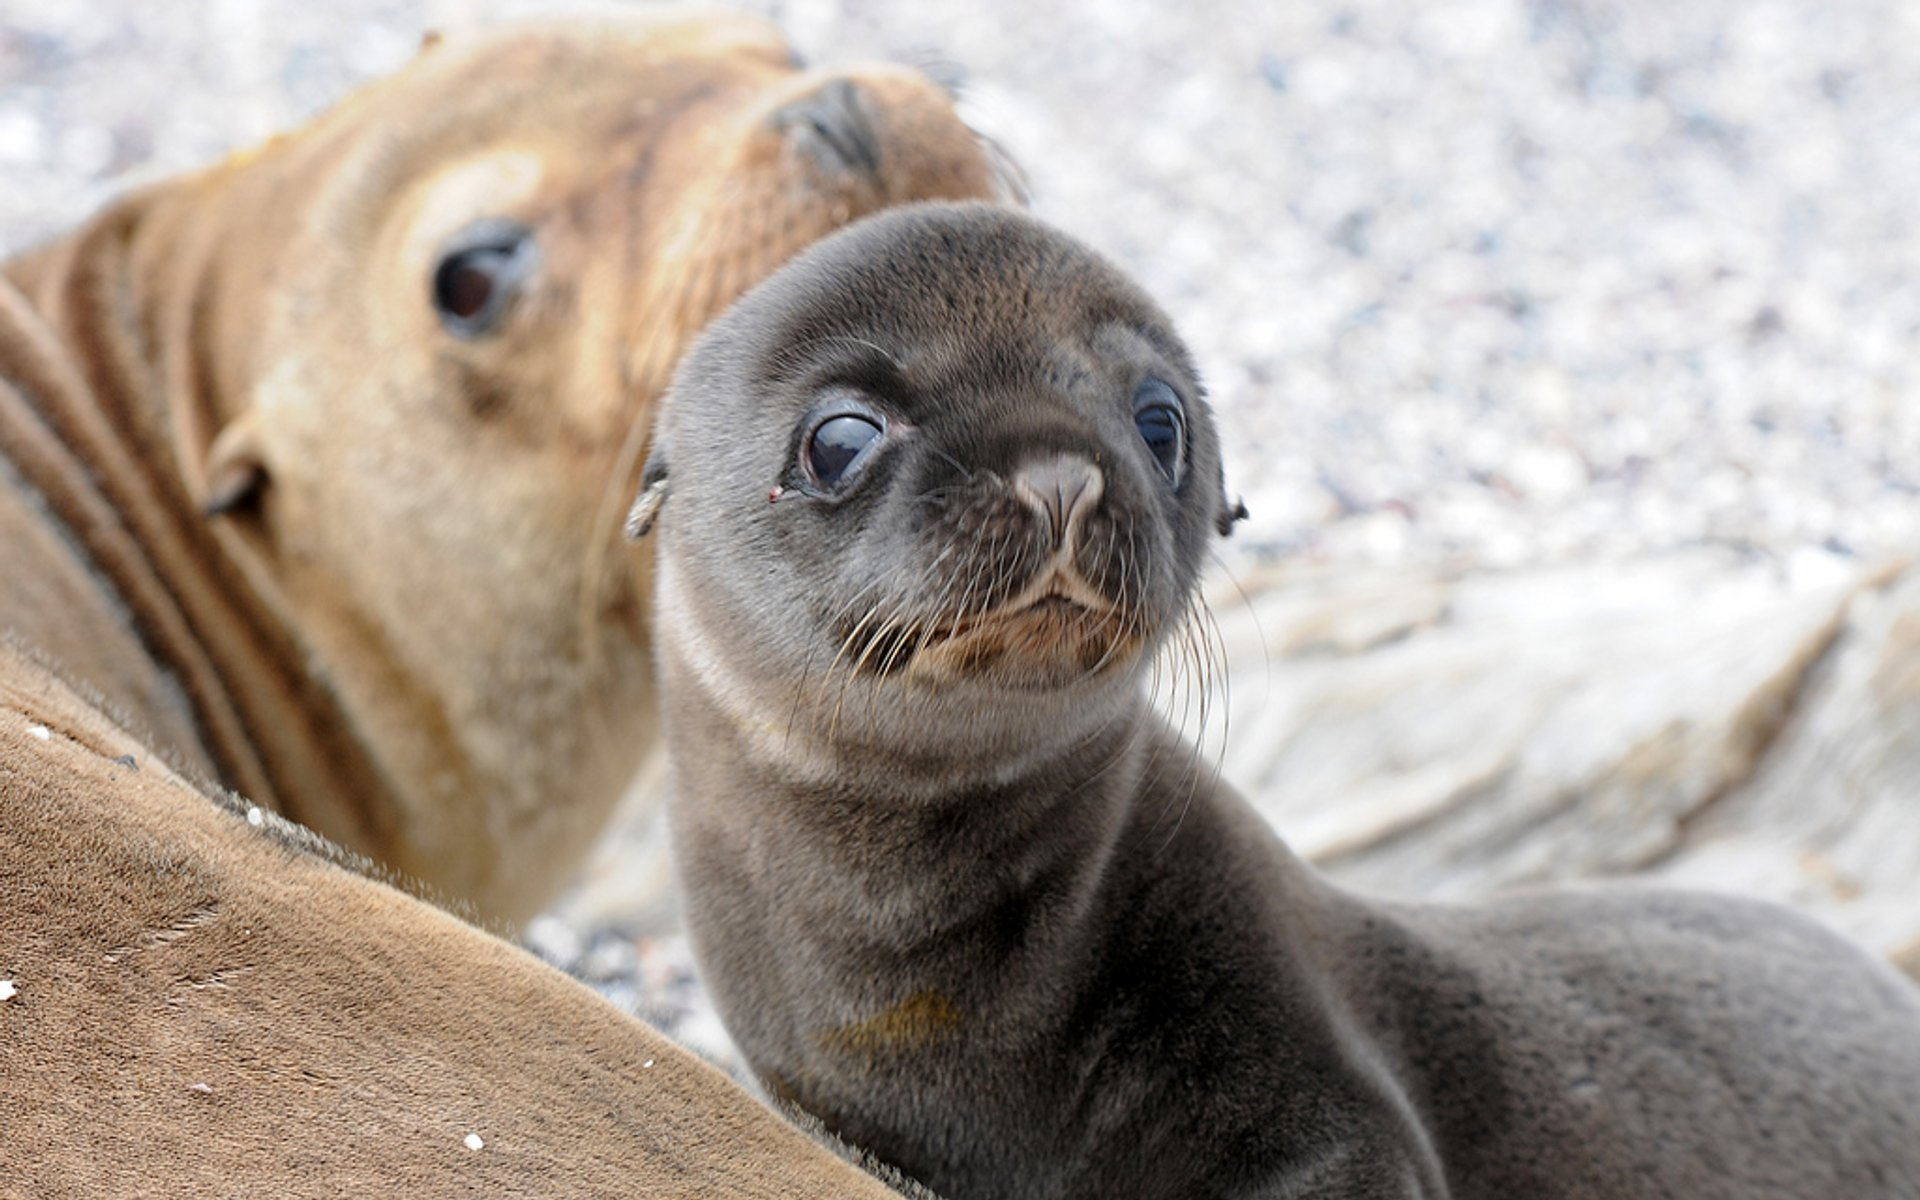 Baby Sea Lions in Galapagos Islands - Best Time